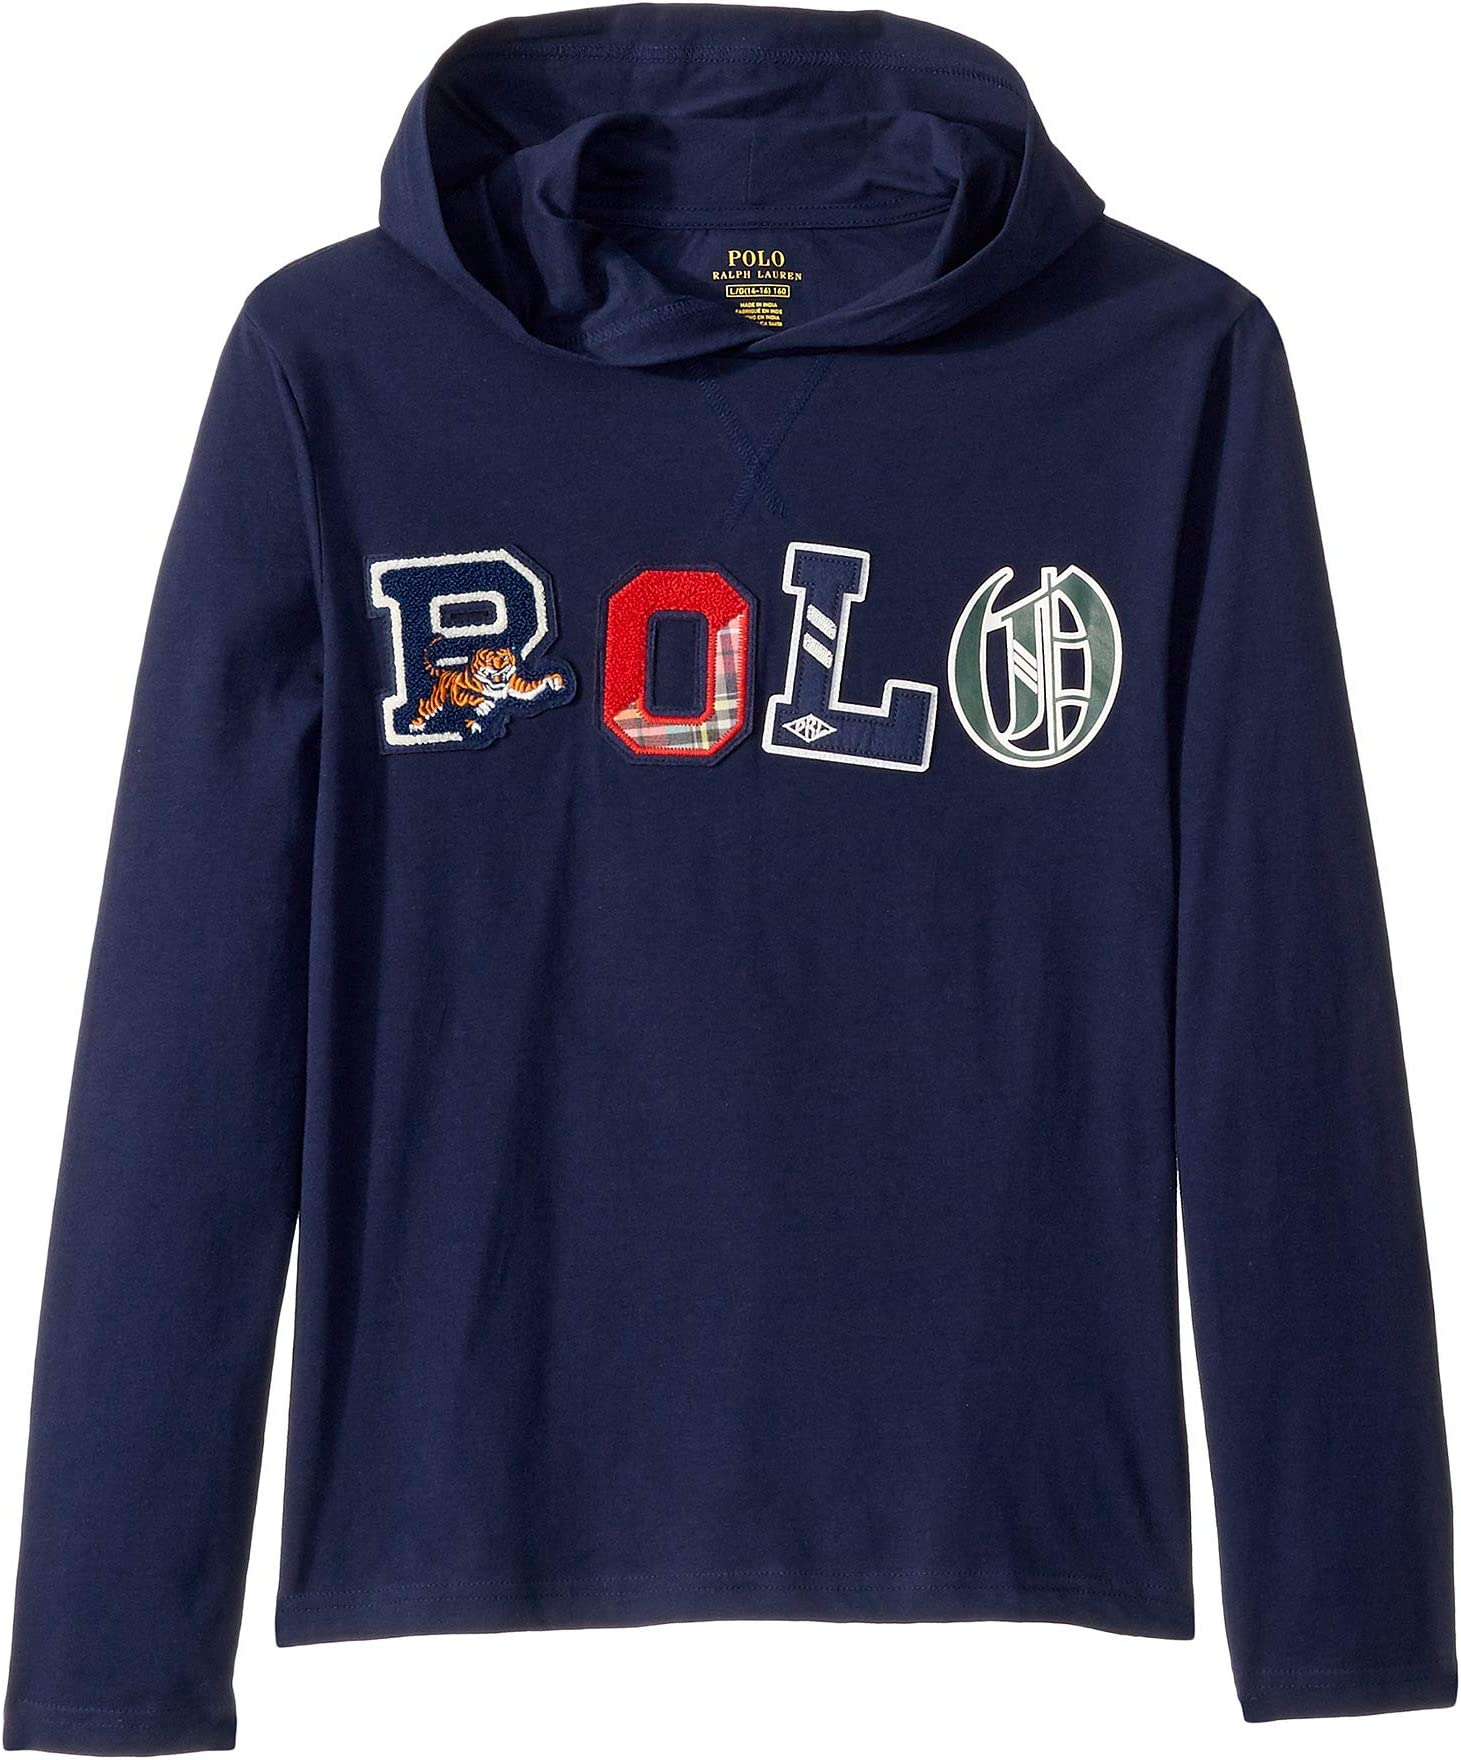 68a3bac4 World Of Ralph Lauren- Apparel, Shoes, & More | Zappos.com